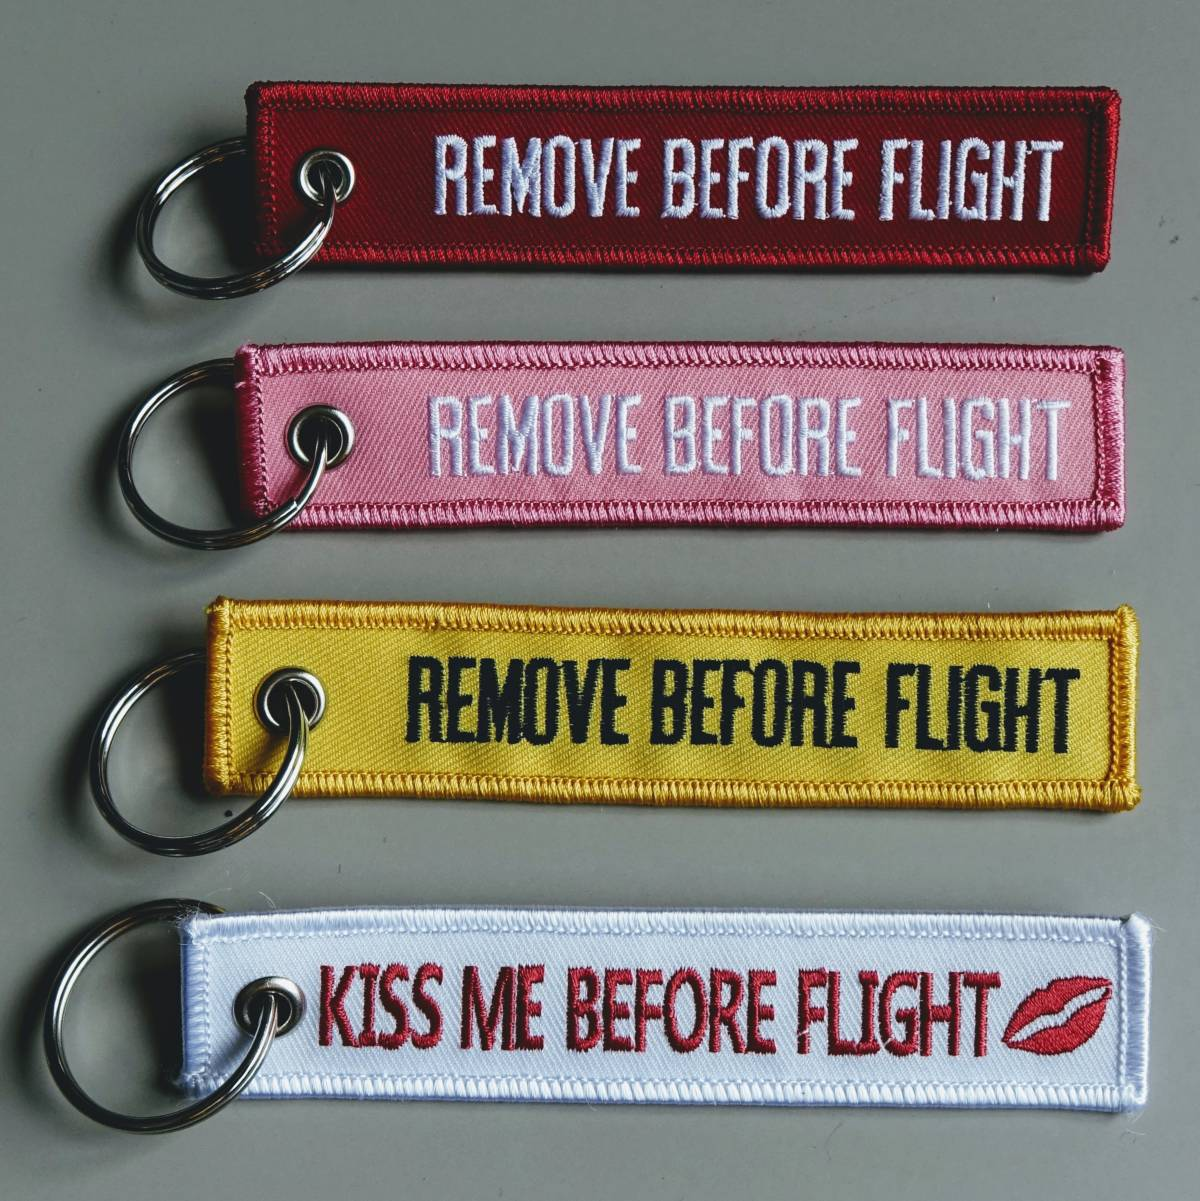 REMOVE BEFORE FLIGHT embroidered key chains